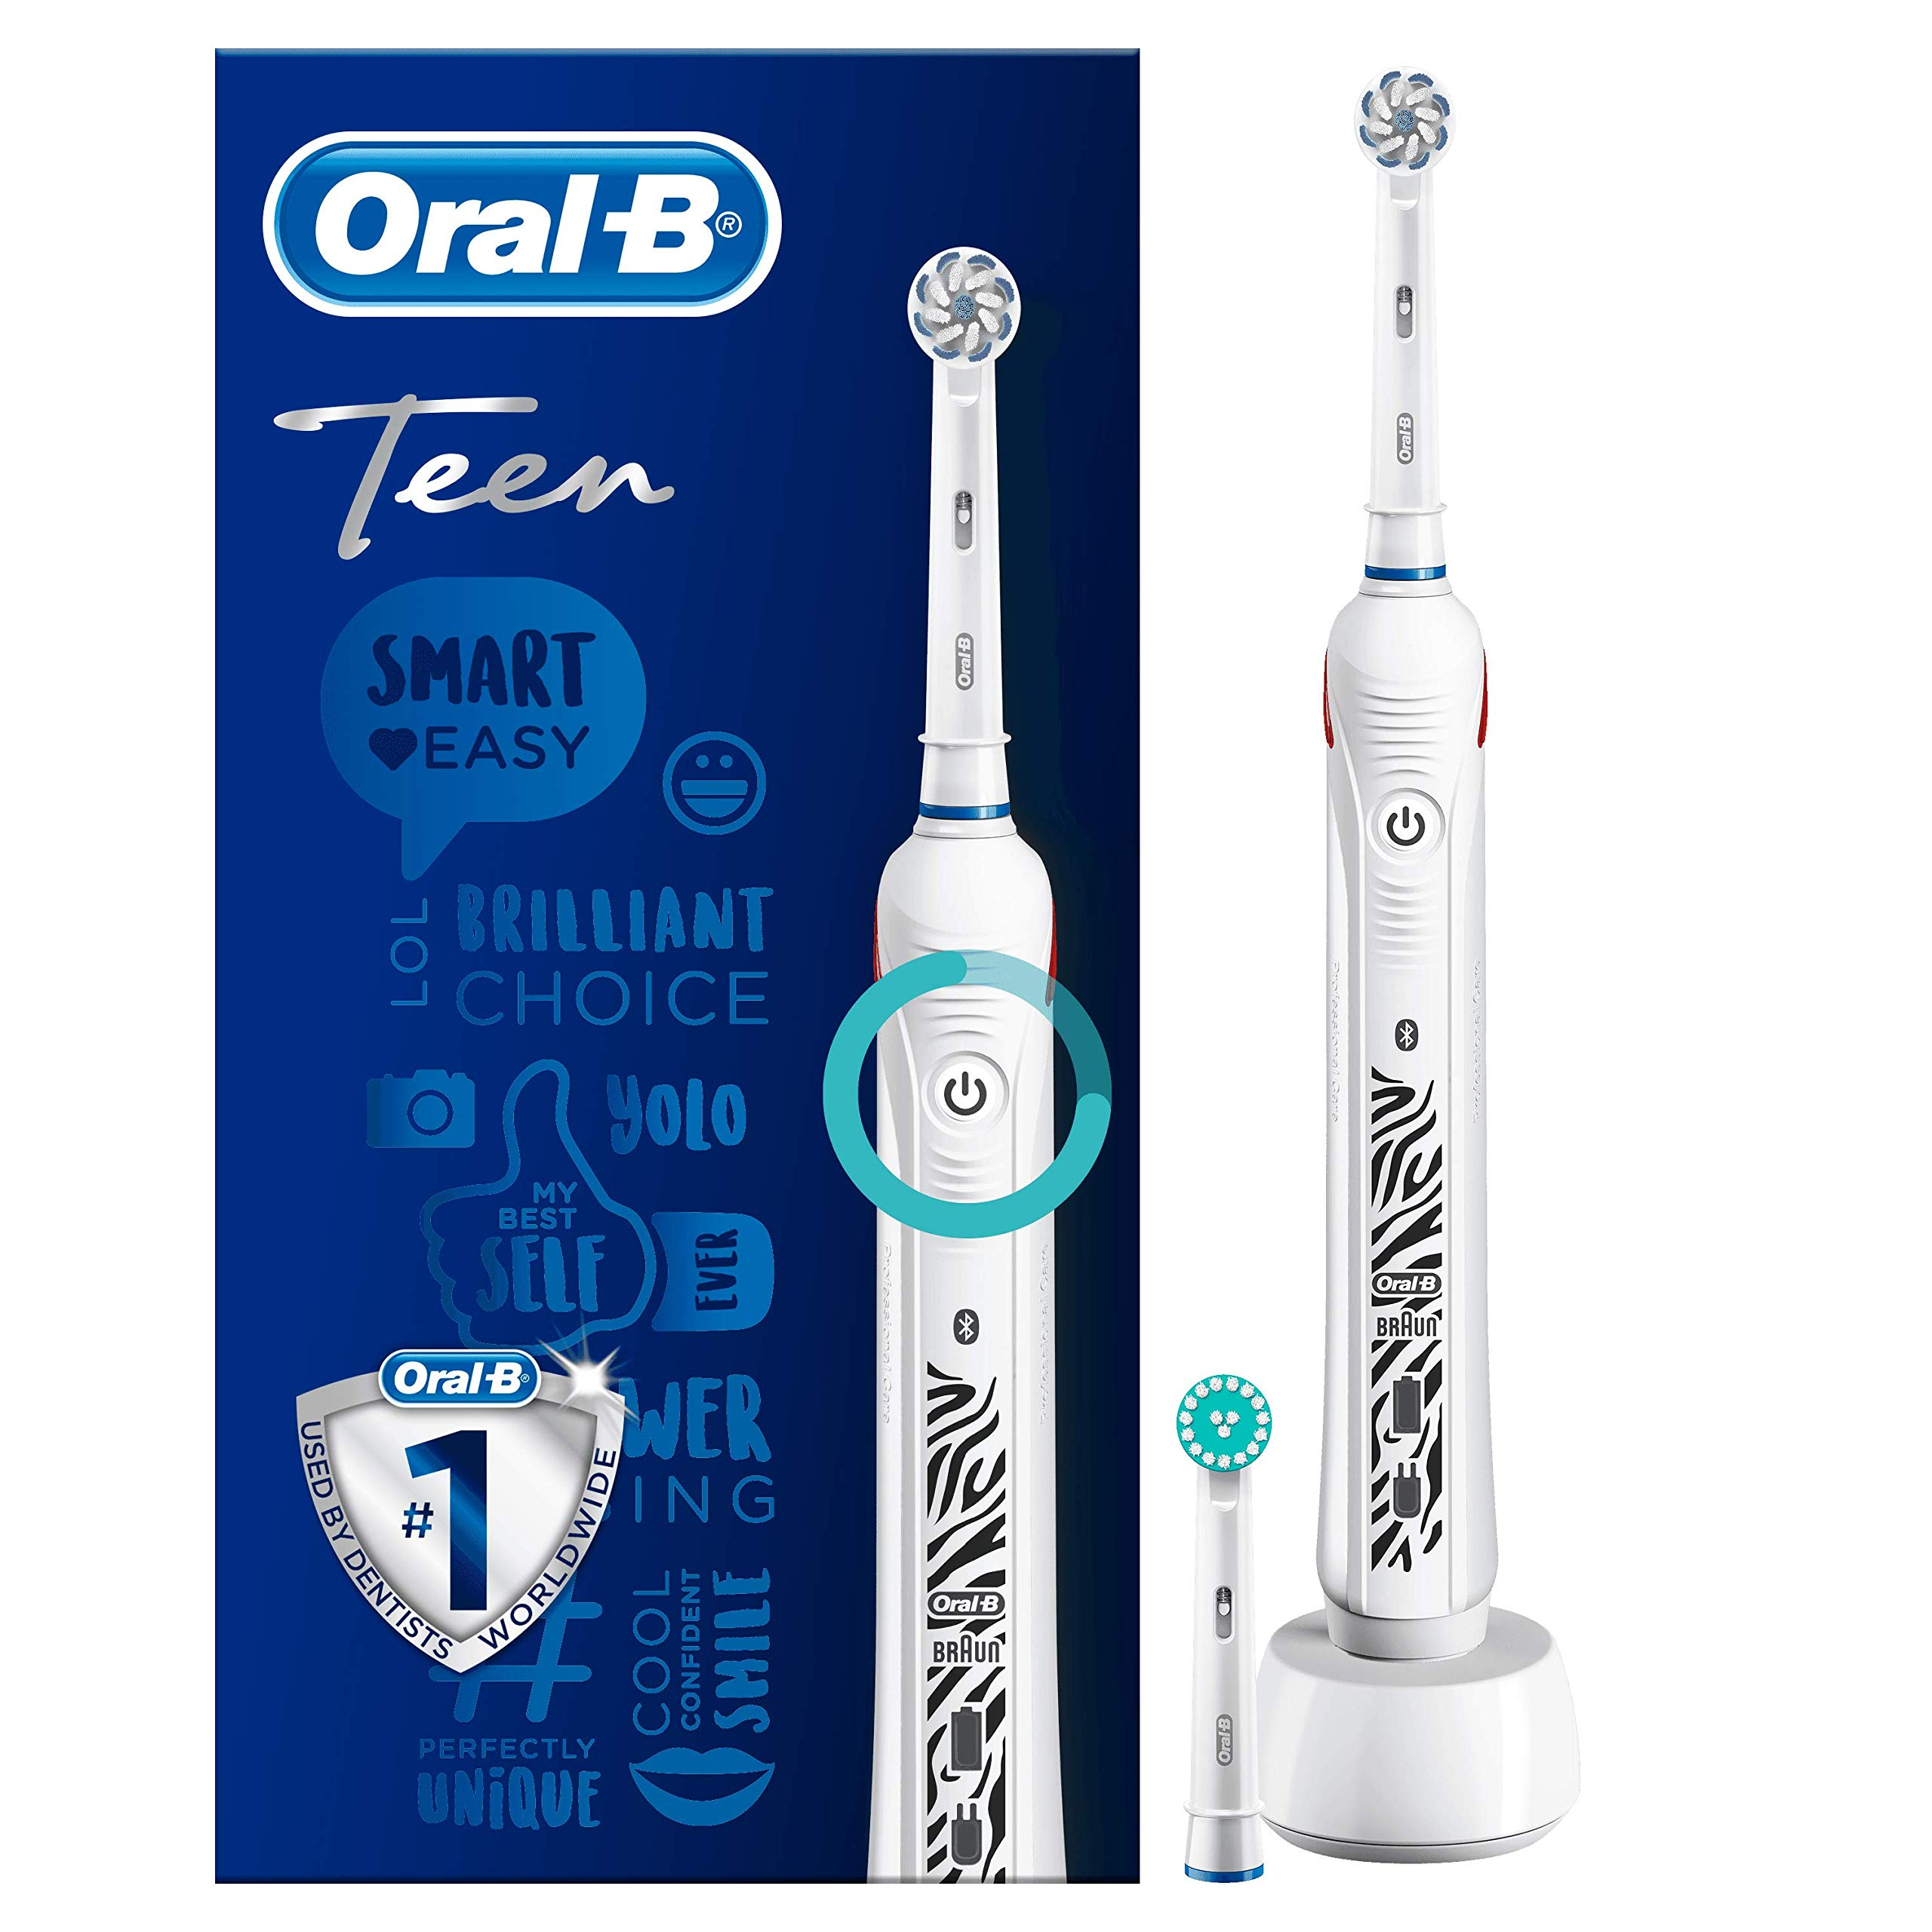 Oral-B Teen White Electric Rechargeable Toothbrush for Ages 13+, 1 Connected Handle, 1 Sensitive and 1 Orthodontic Toothbrush Heads for Use with Braces, UK 2-Pin Plug, Stocking Filler for Kids